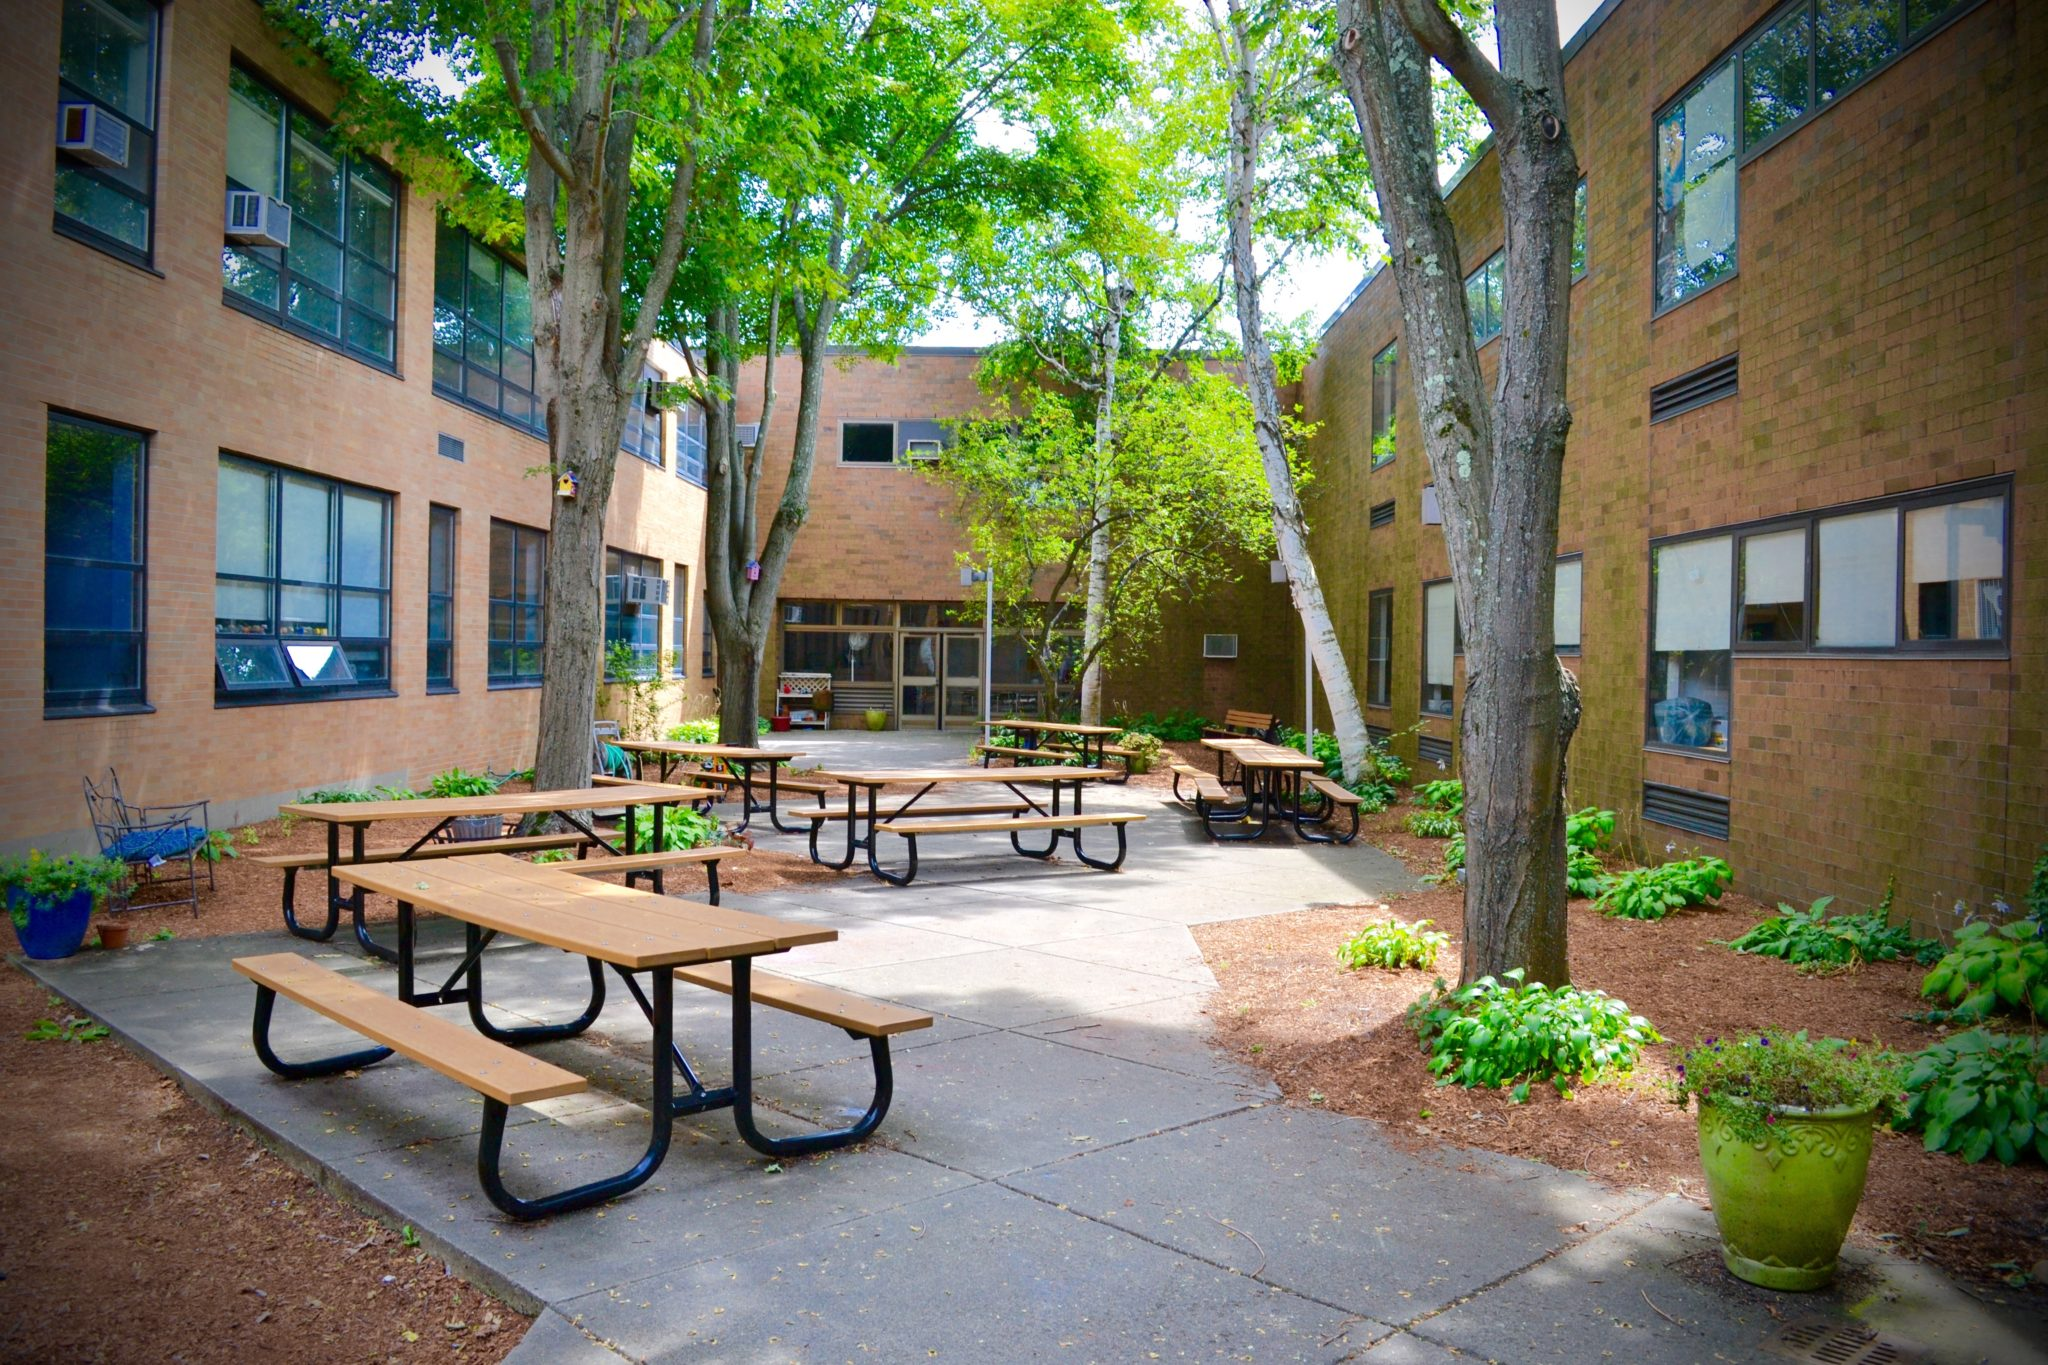 SMS courtyard with tables and landscaping